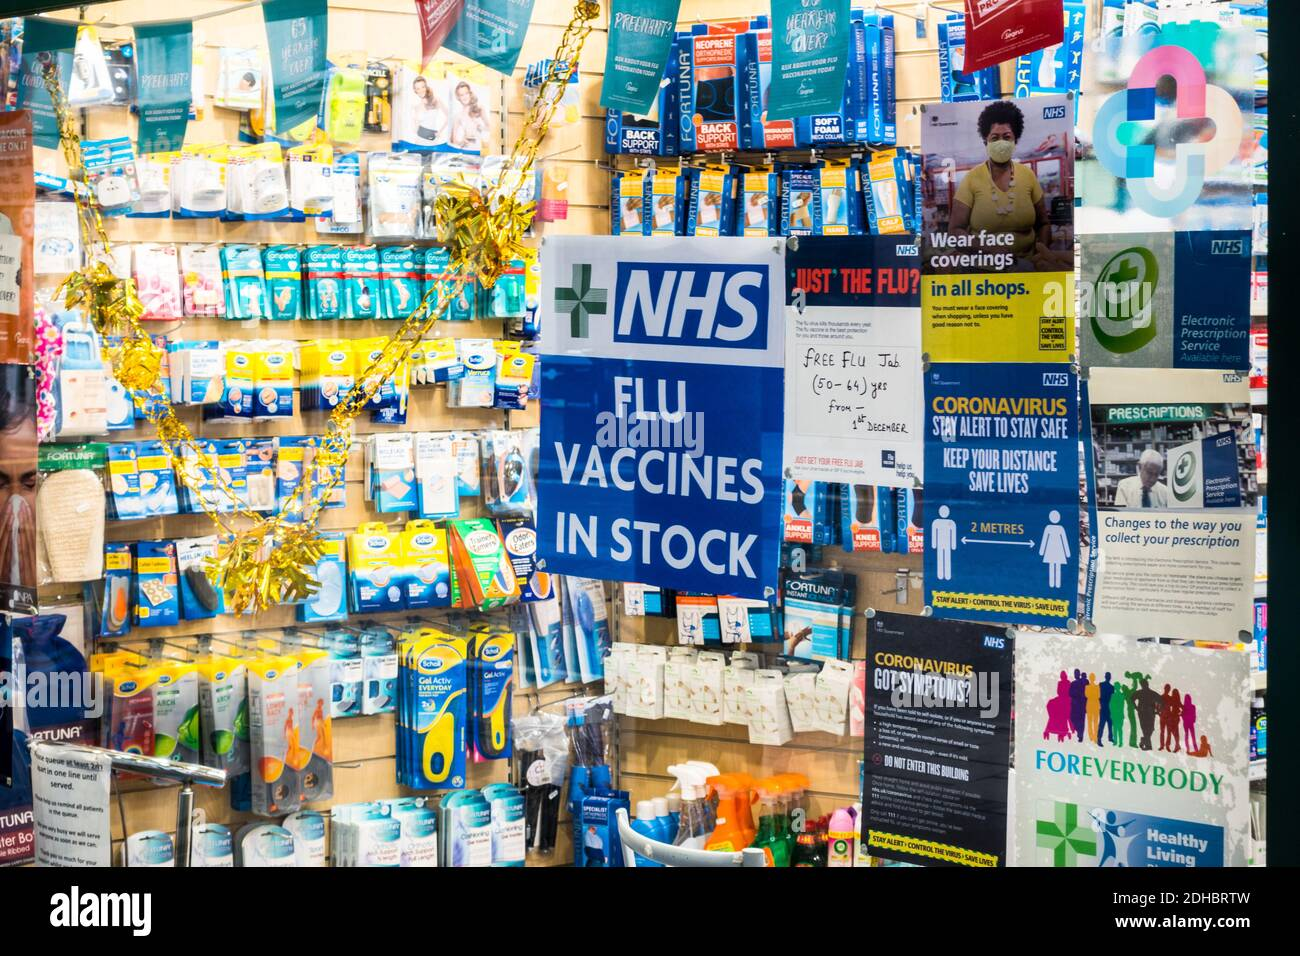 nhs-flu-jab-vaccines-in-stock-notice-board-on-the-door-of-an-independent-pharmacy-shop-in-barbican-london-2DHBRTW.jpg